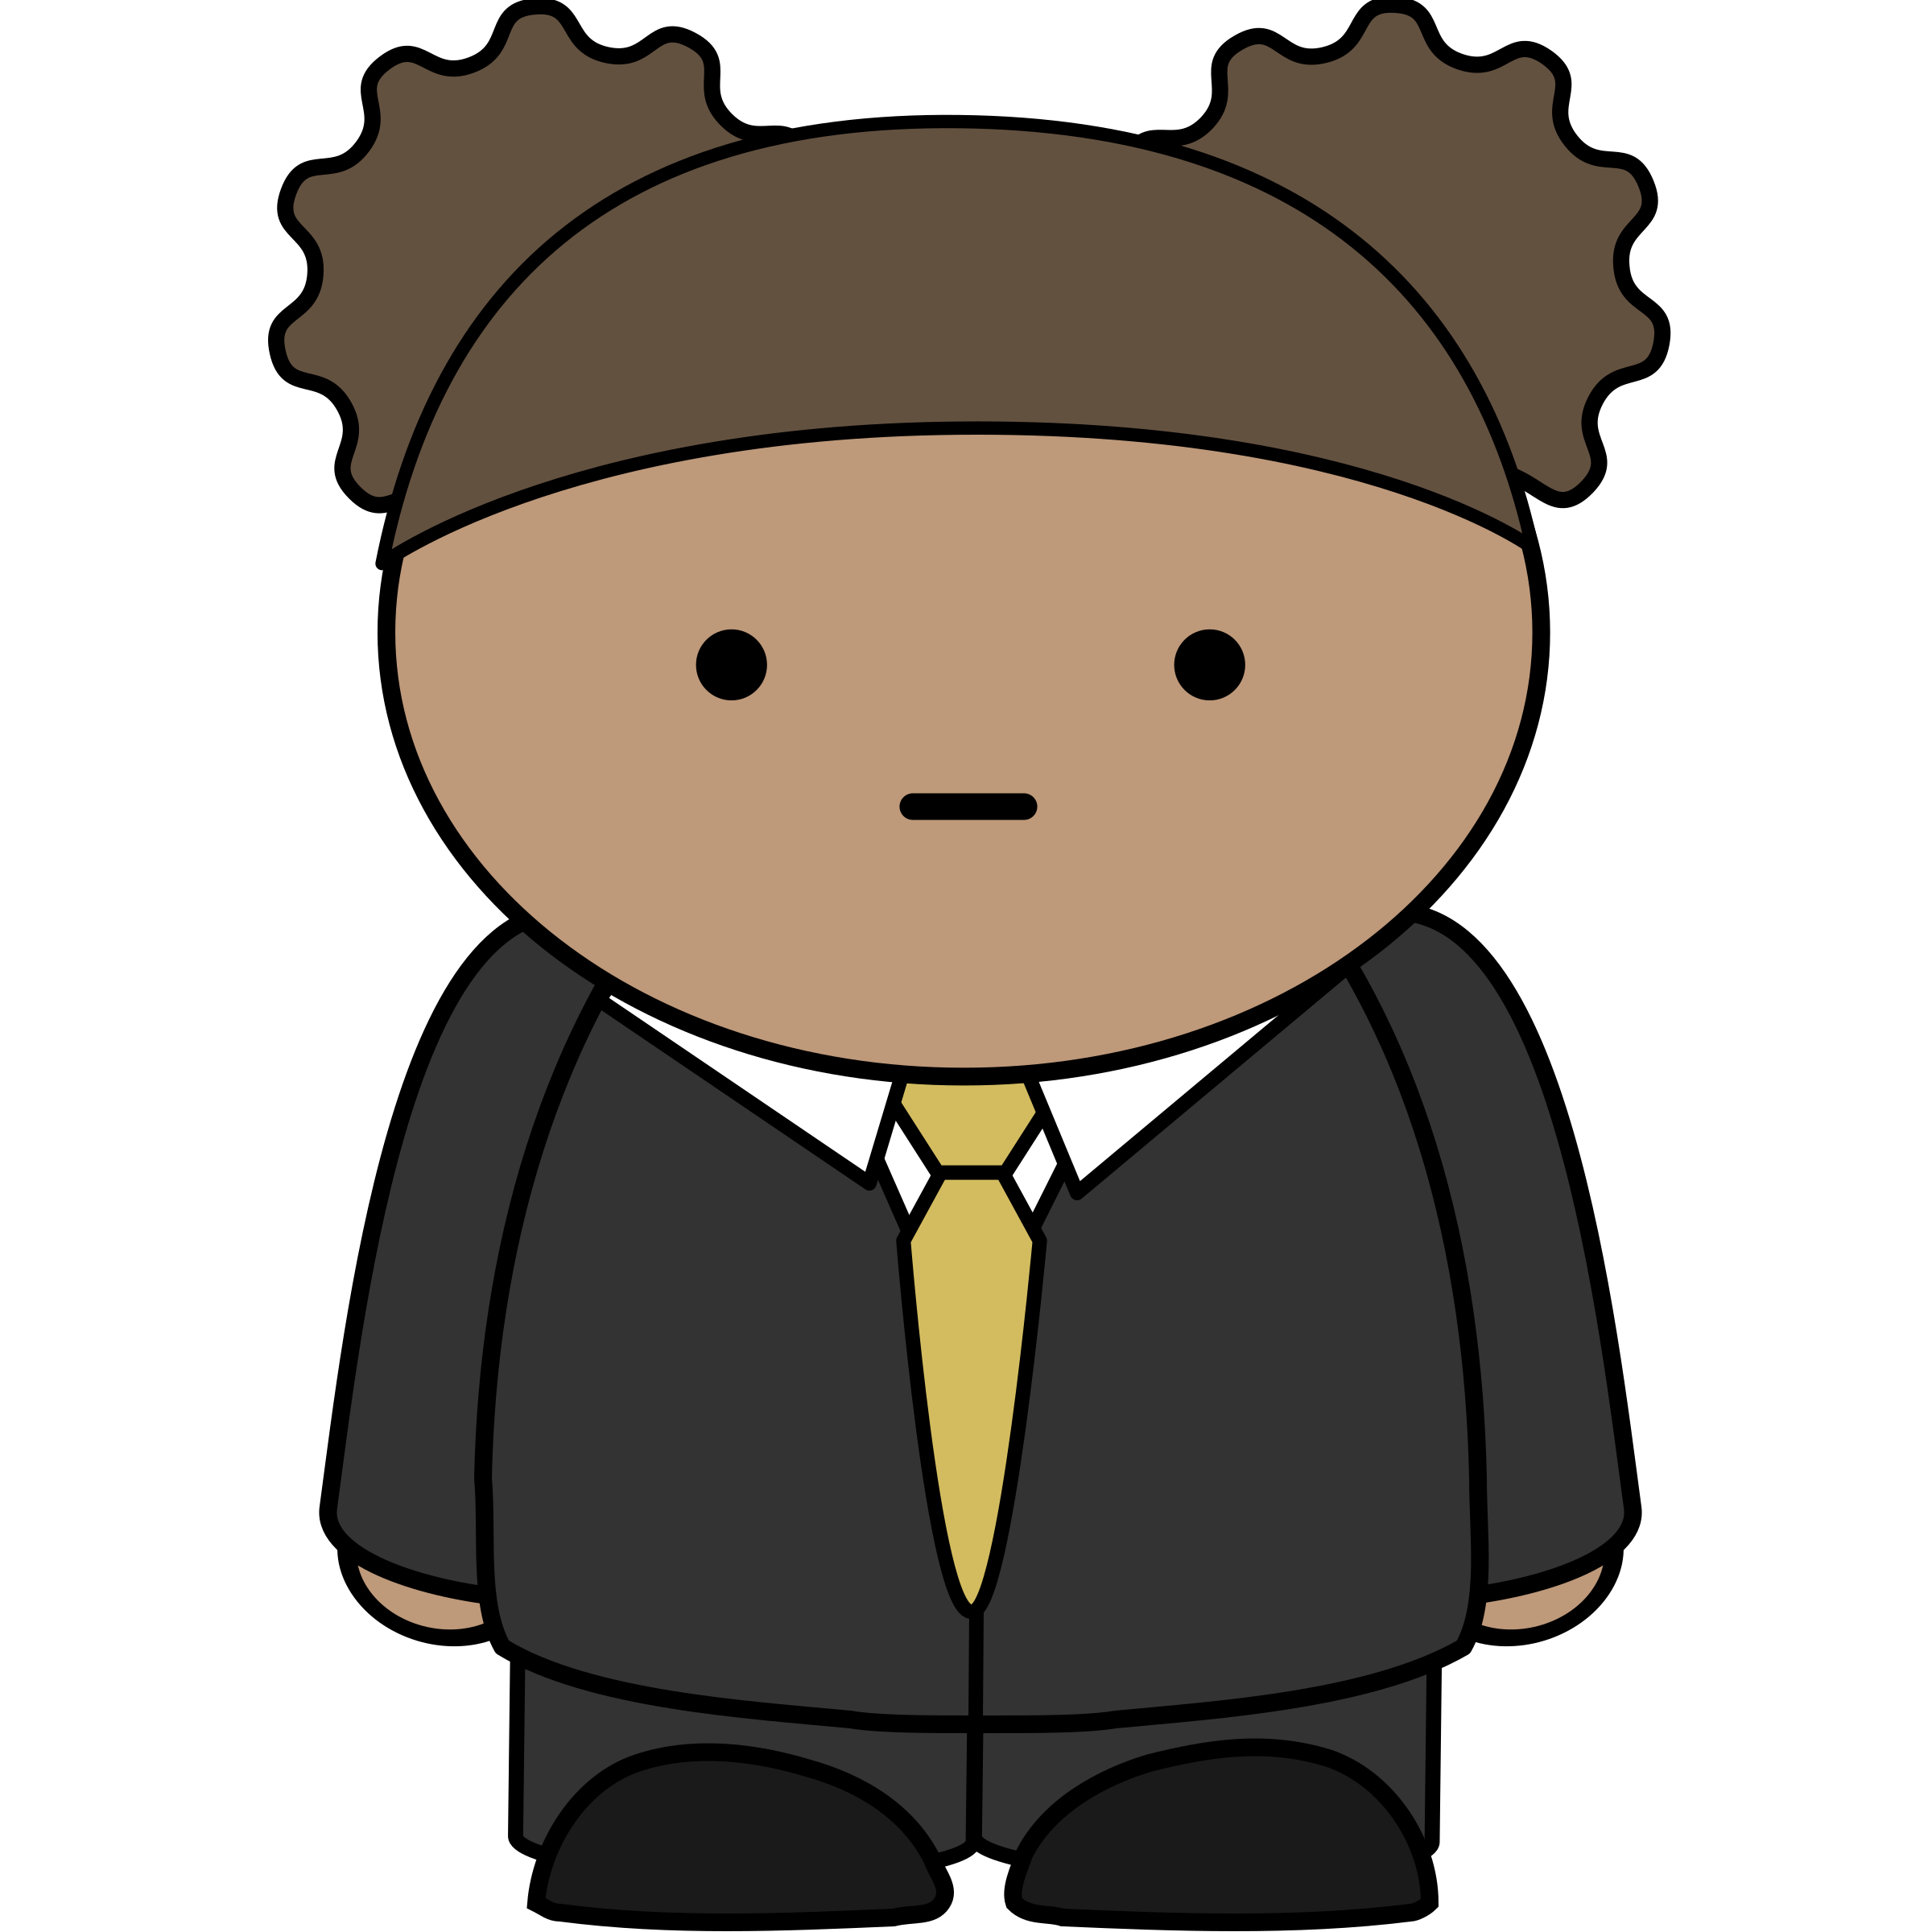 Comic character wearing a business suit by anarres